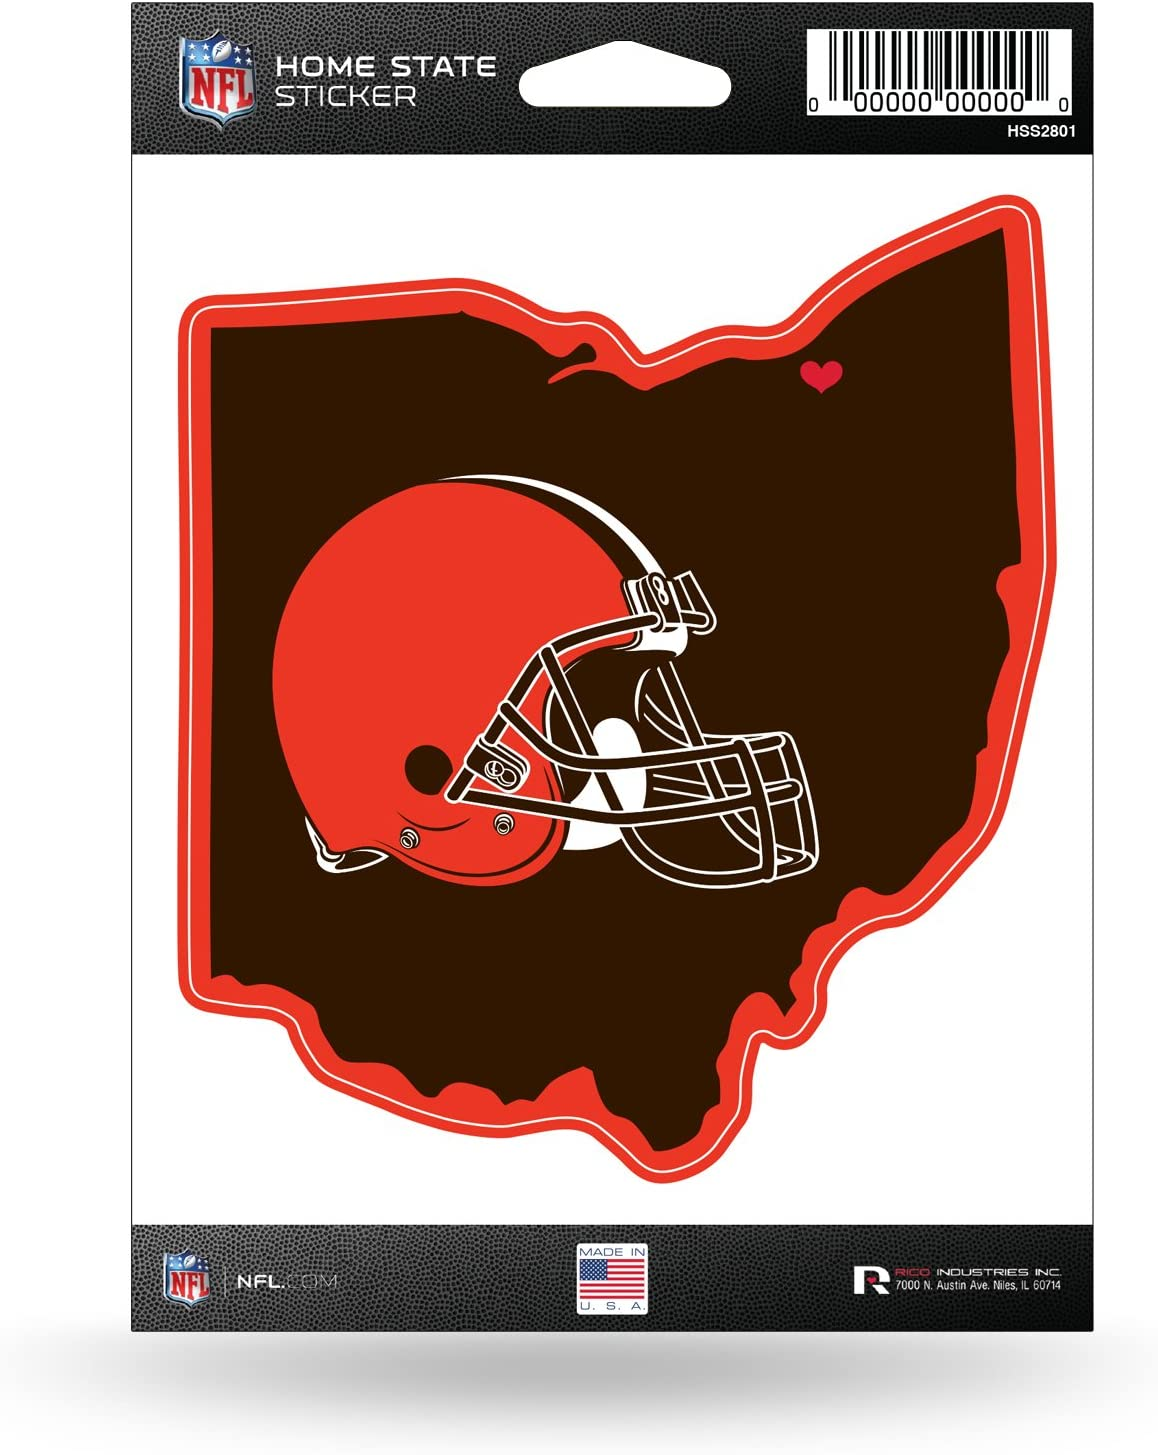 NFL Rico Industries Home State Sticker, Cleveland Browns Team Color, 5.75 x 8-inches